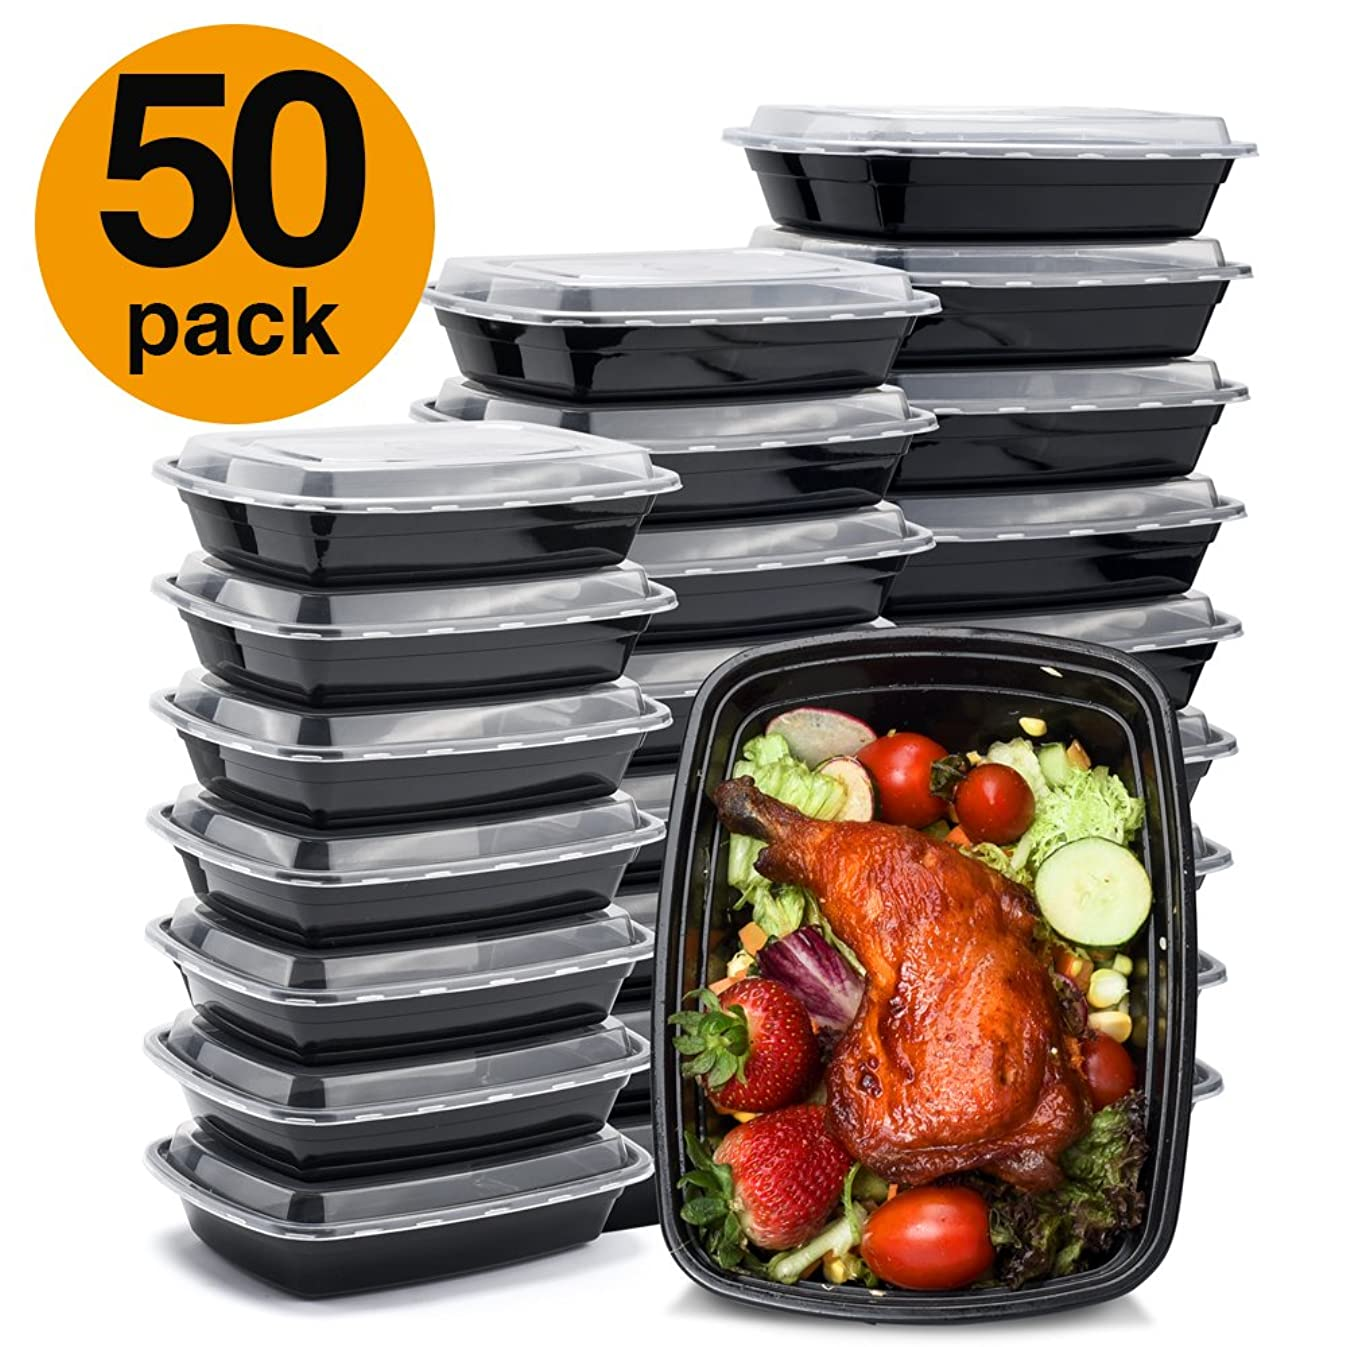 Glotoch Meal Prep Containers 32ounce Containers Single 1 Compartment with Lids Food Storage Containers Bento Box Microwave,Freezer,Dishwasher Safe Lunch Containers (50)